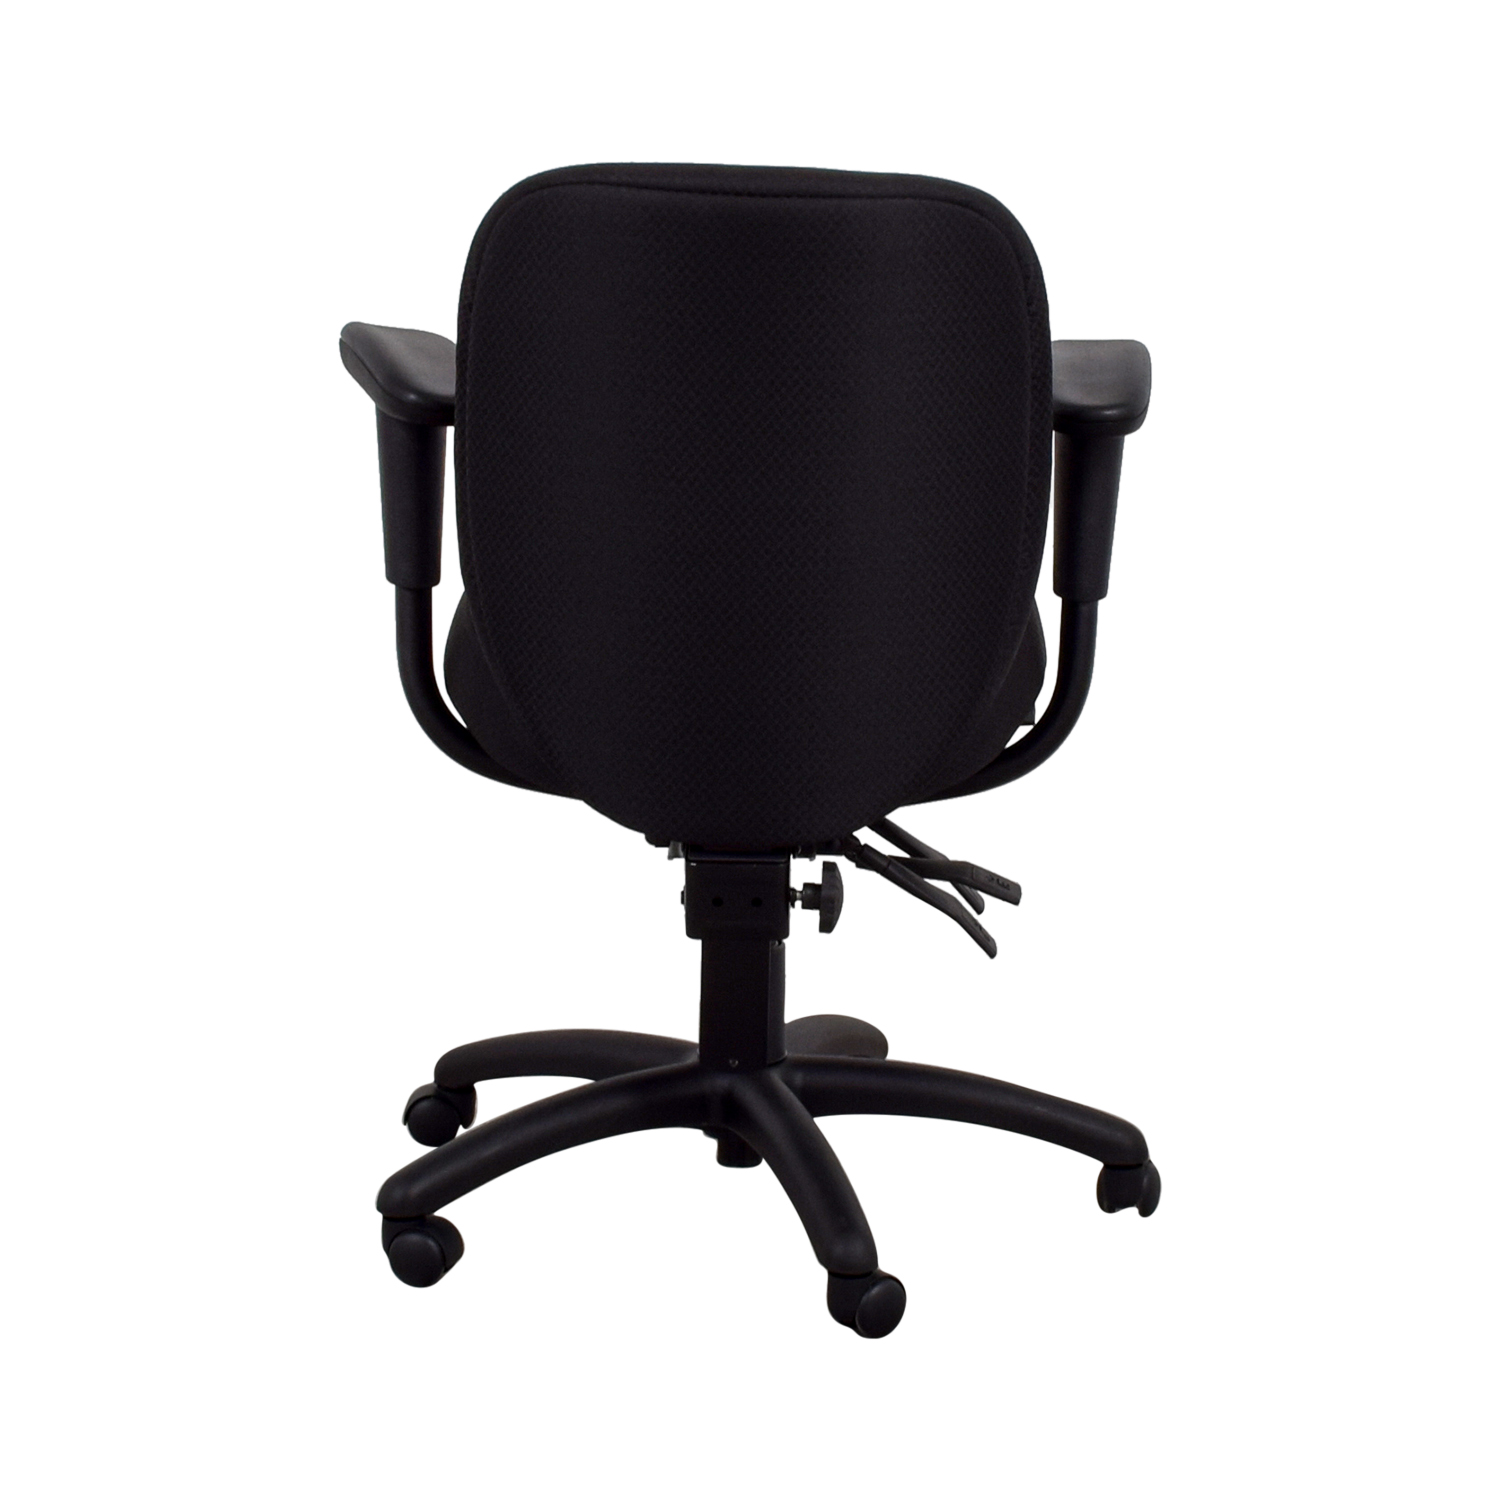 Offices to Go Offices to Go Black Quilt Office Chair second hand